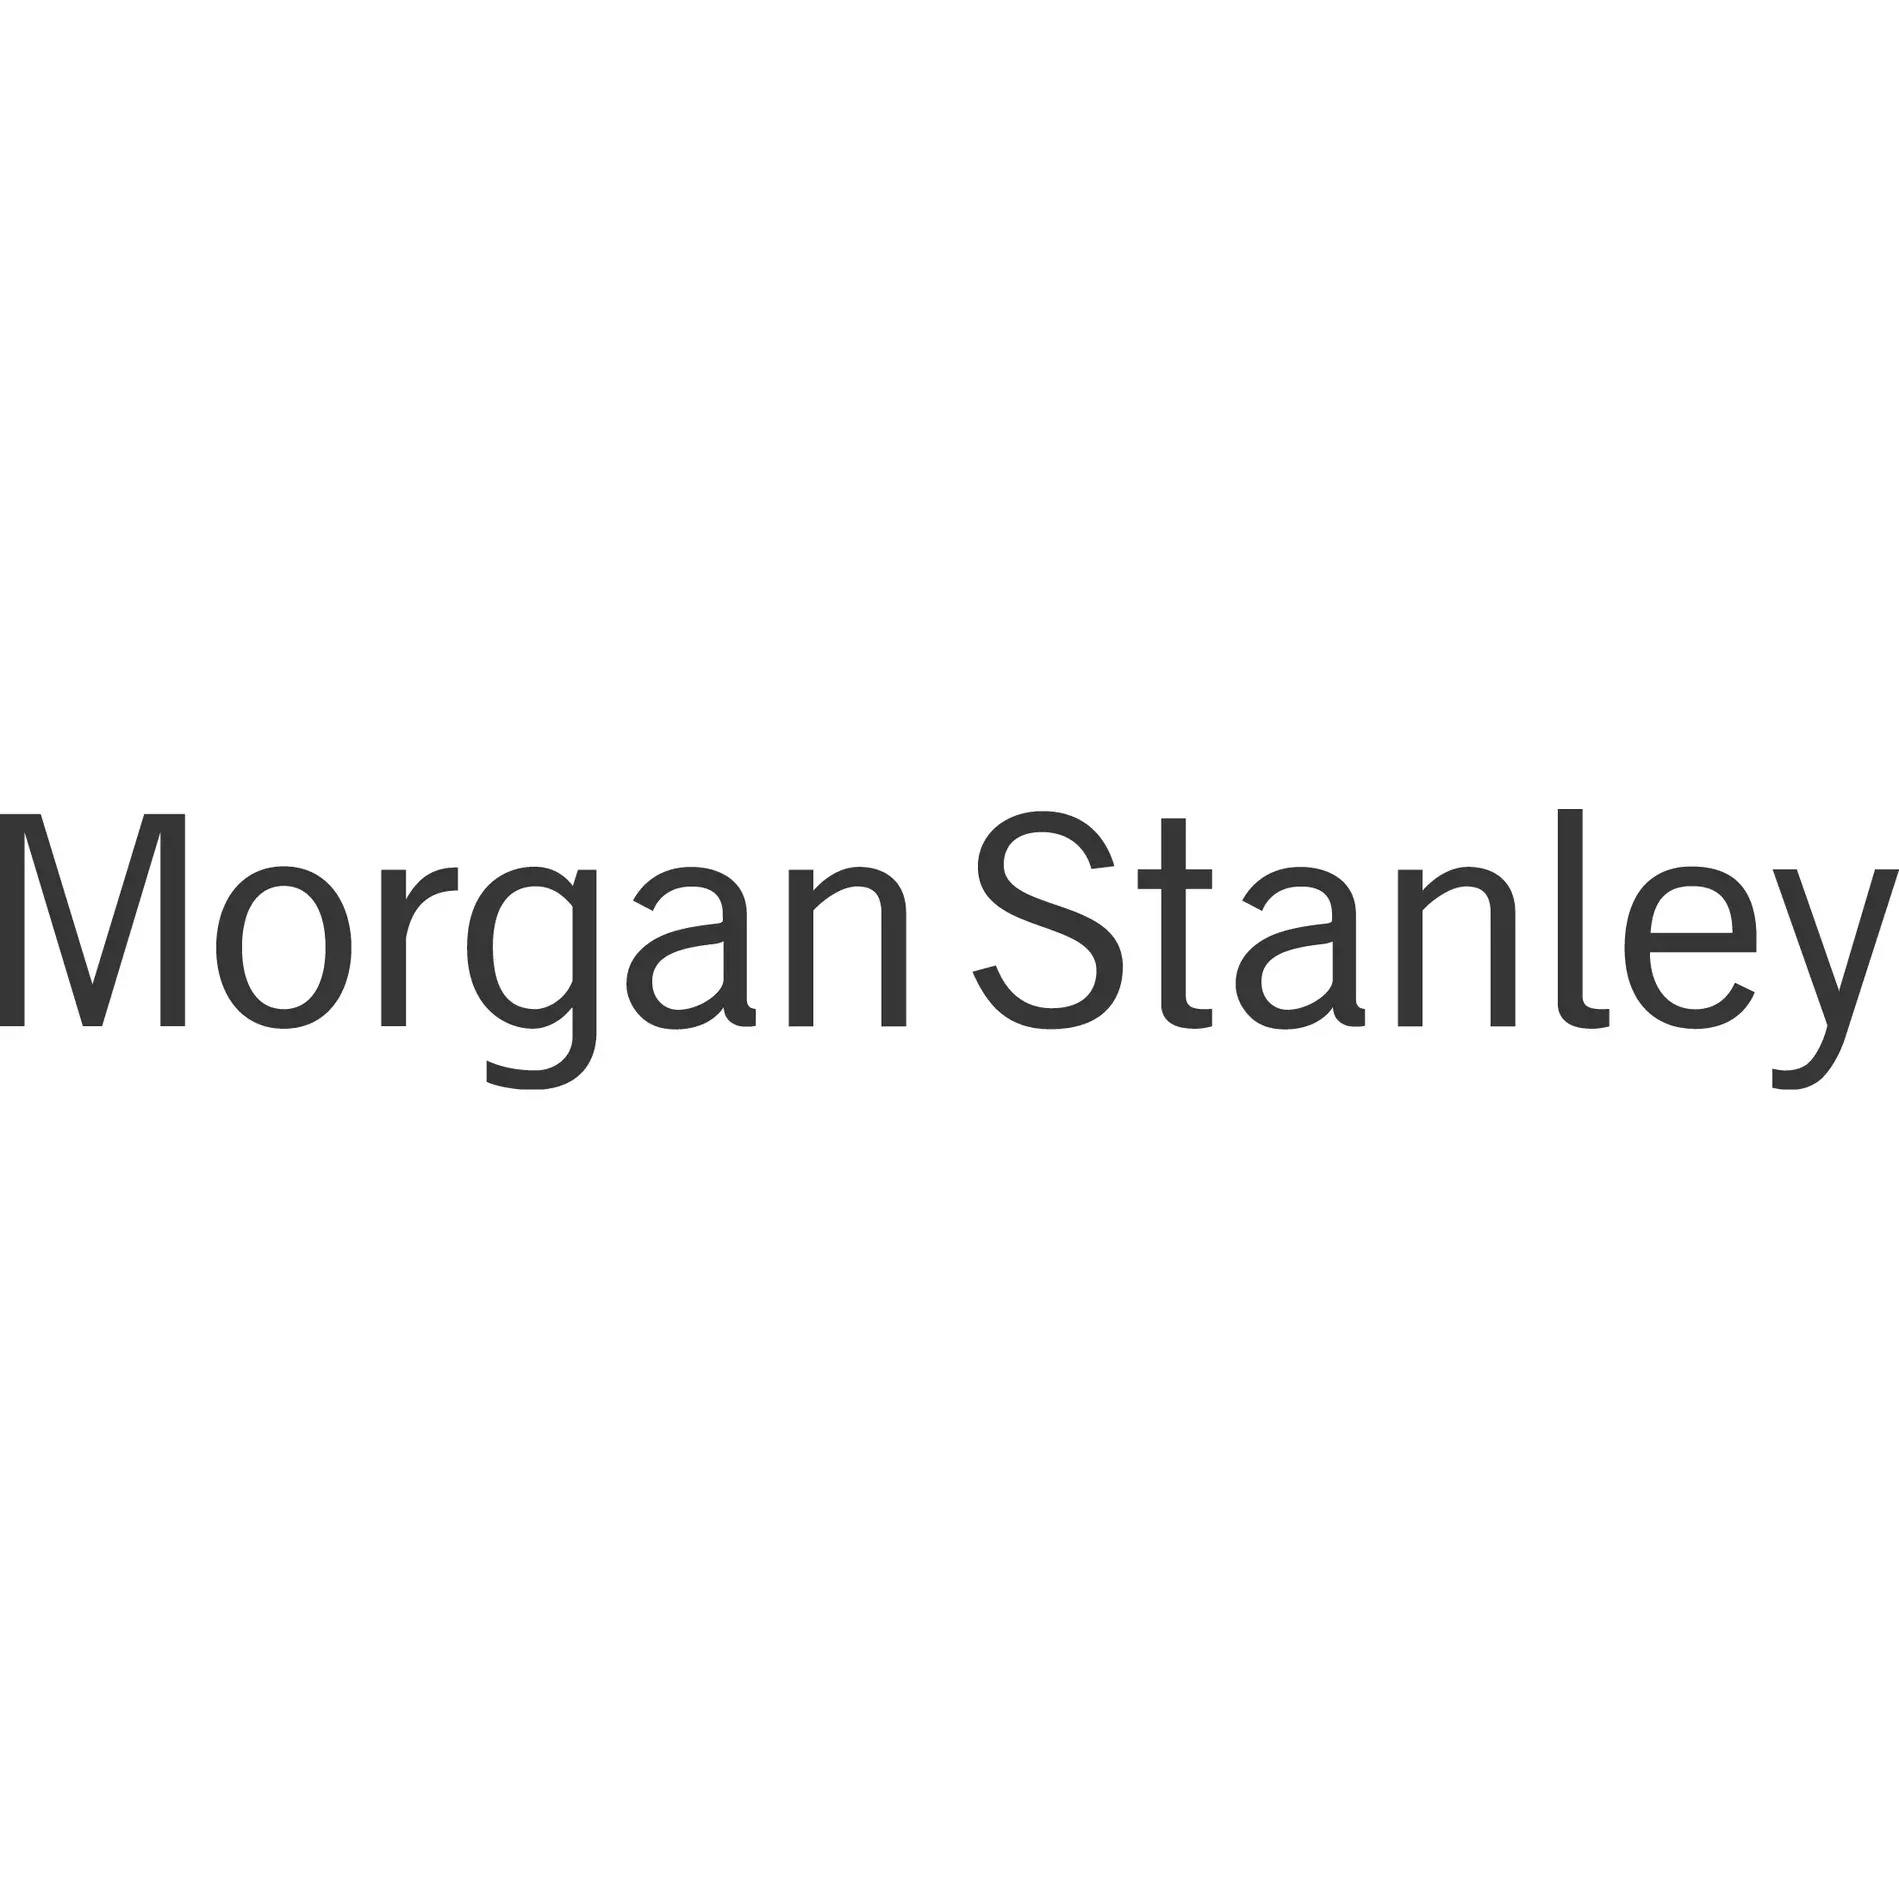 Vasara Wealth Management Group - Morgan Stanley